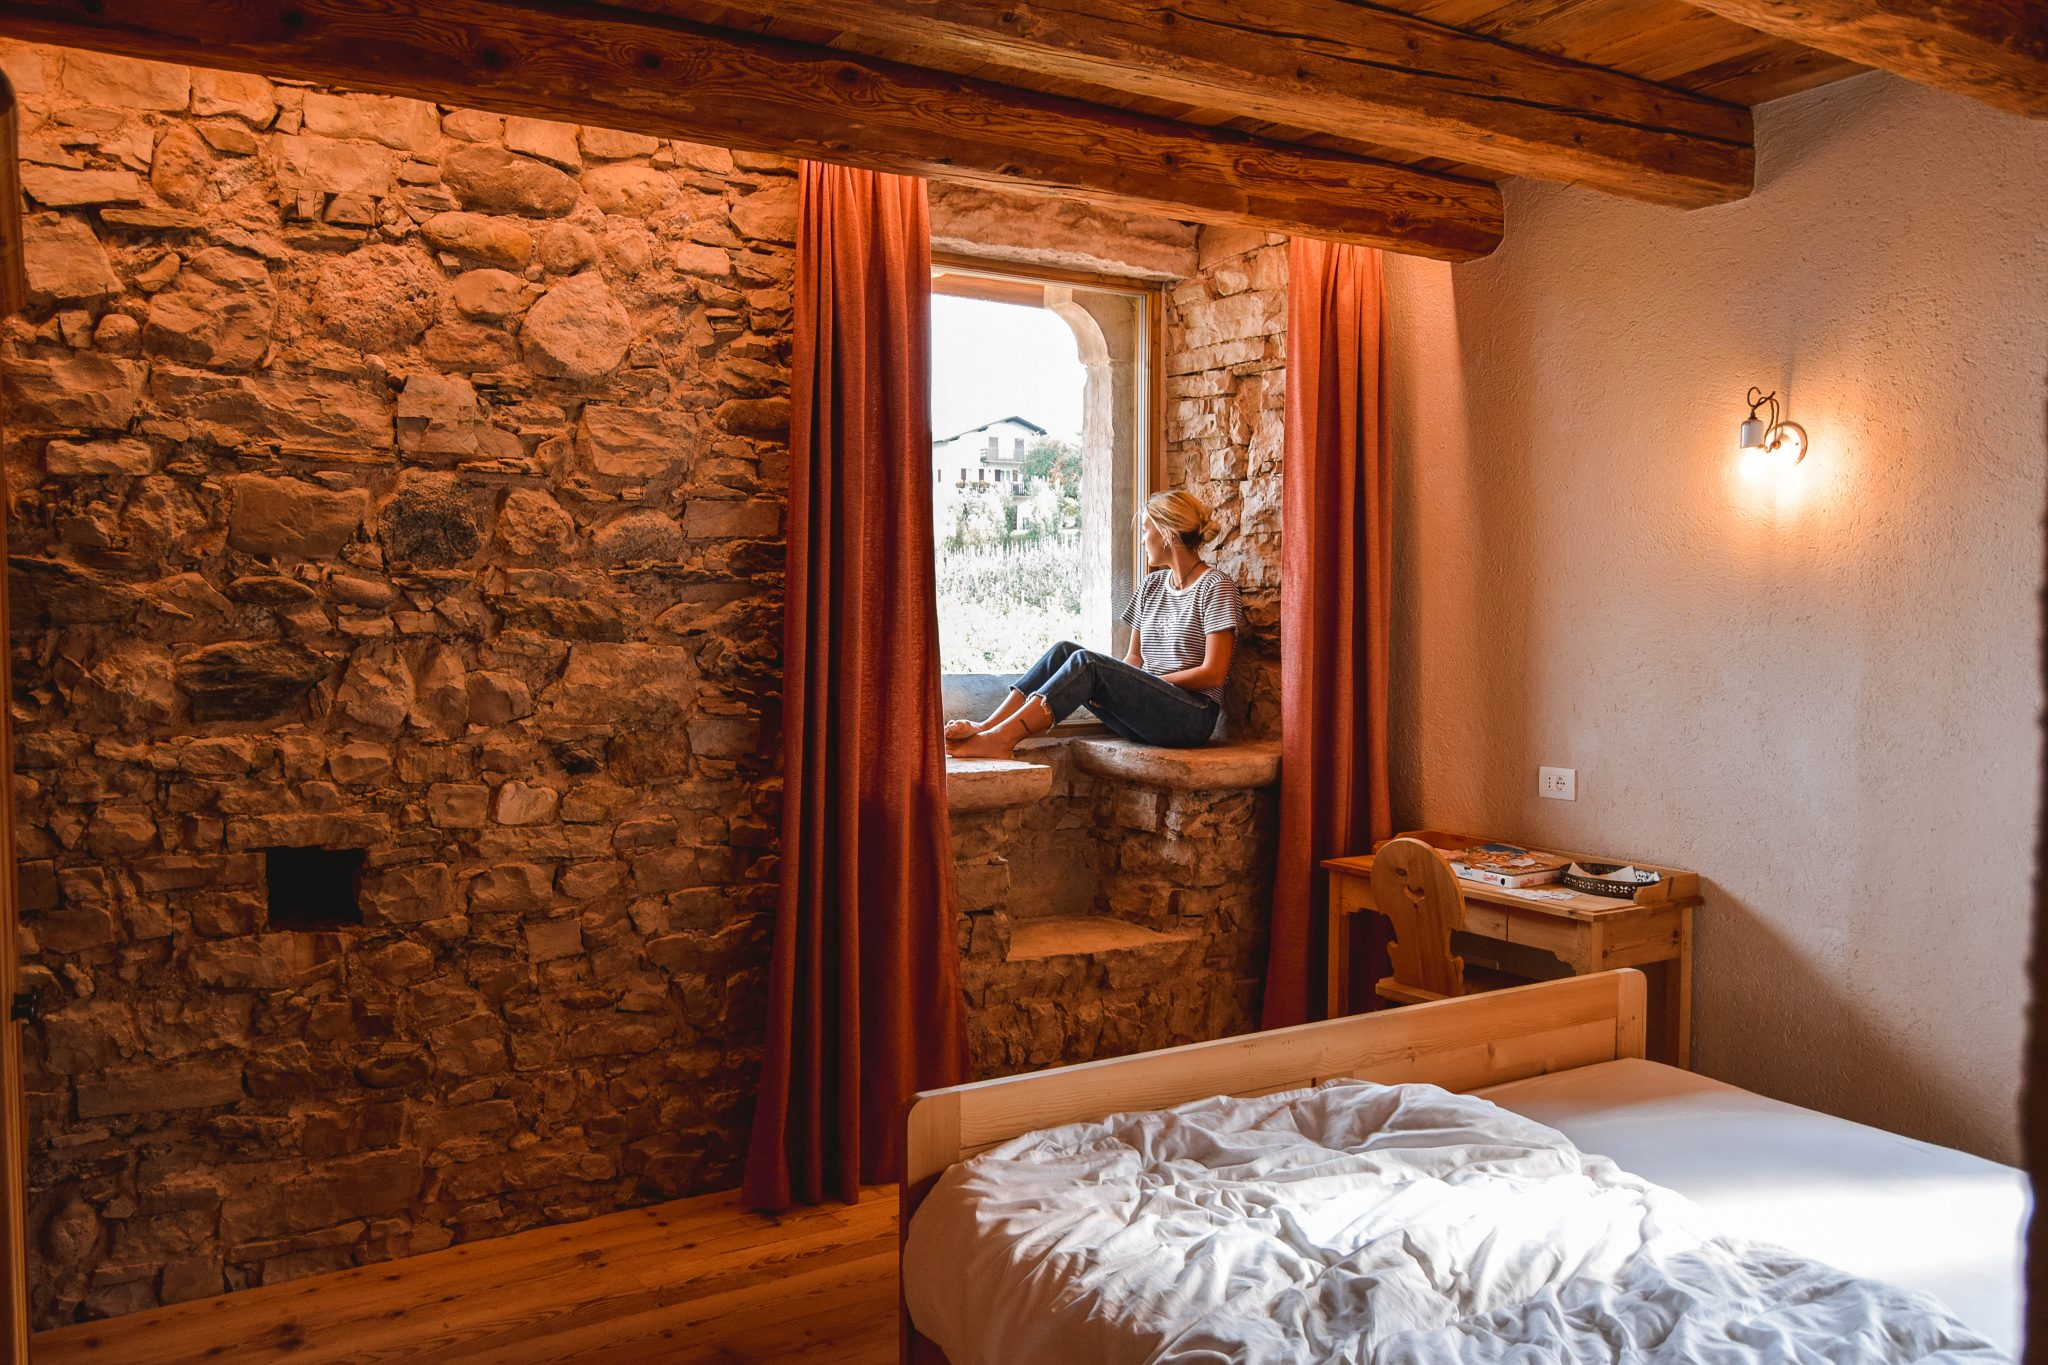 Wanderers & Warriors - Charlie & Lauren UK Travel Couple - Things To Do In Val Di Non - Agritur Ciastel Casez Val Di Non Castle Trentino